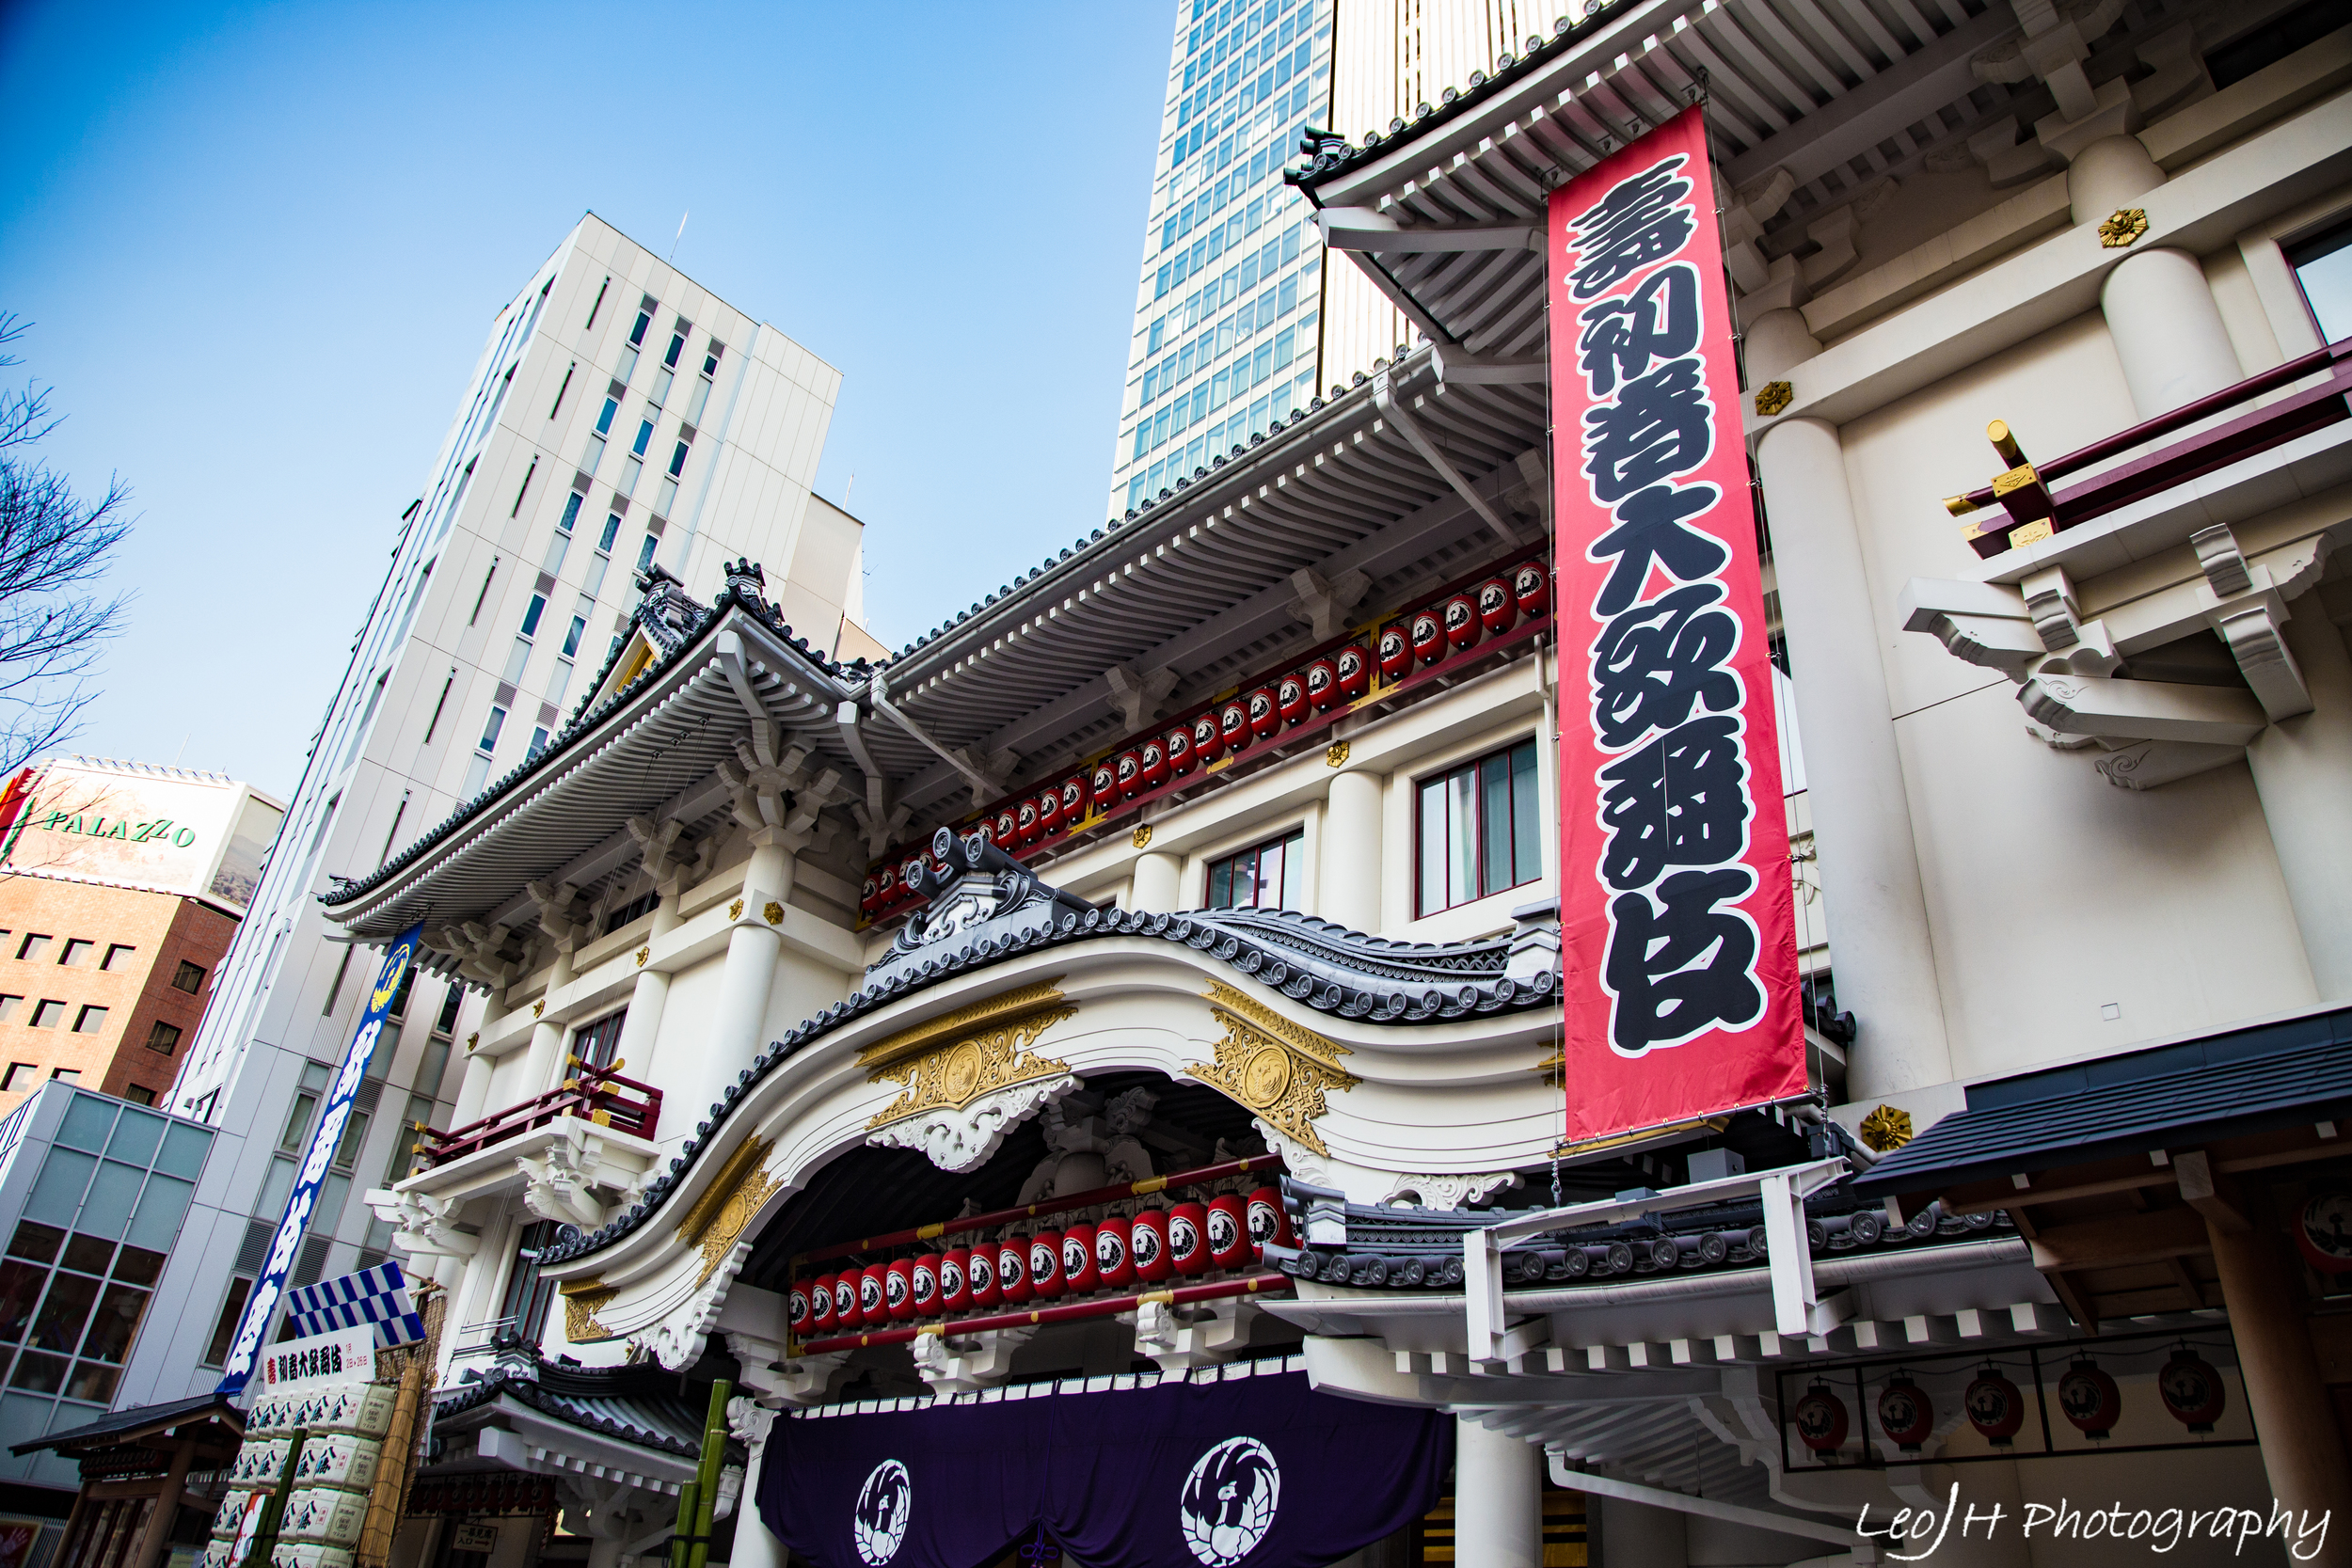 Huge kabuki theatre in the middle of GInza, standing in strong contrast to the tall modern buildings around it.